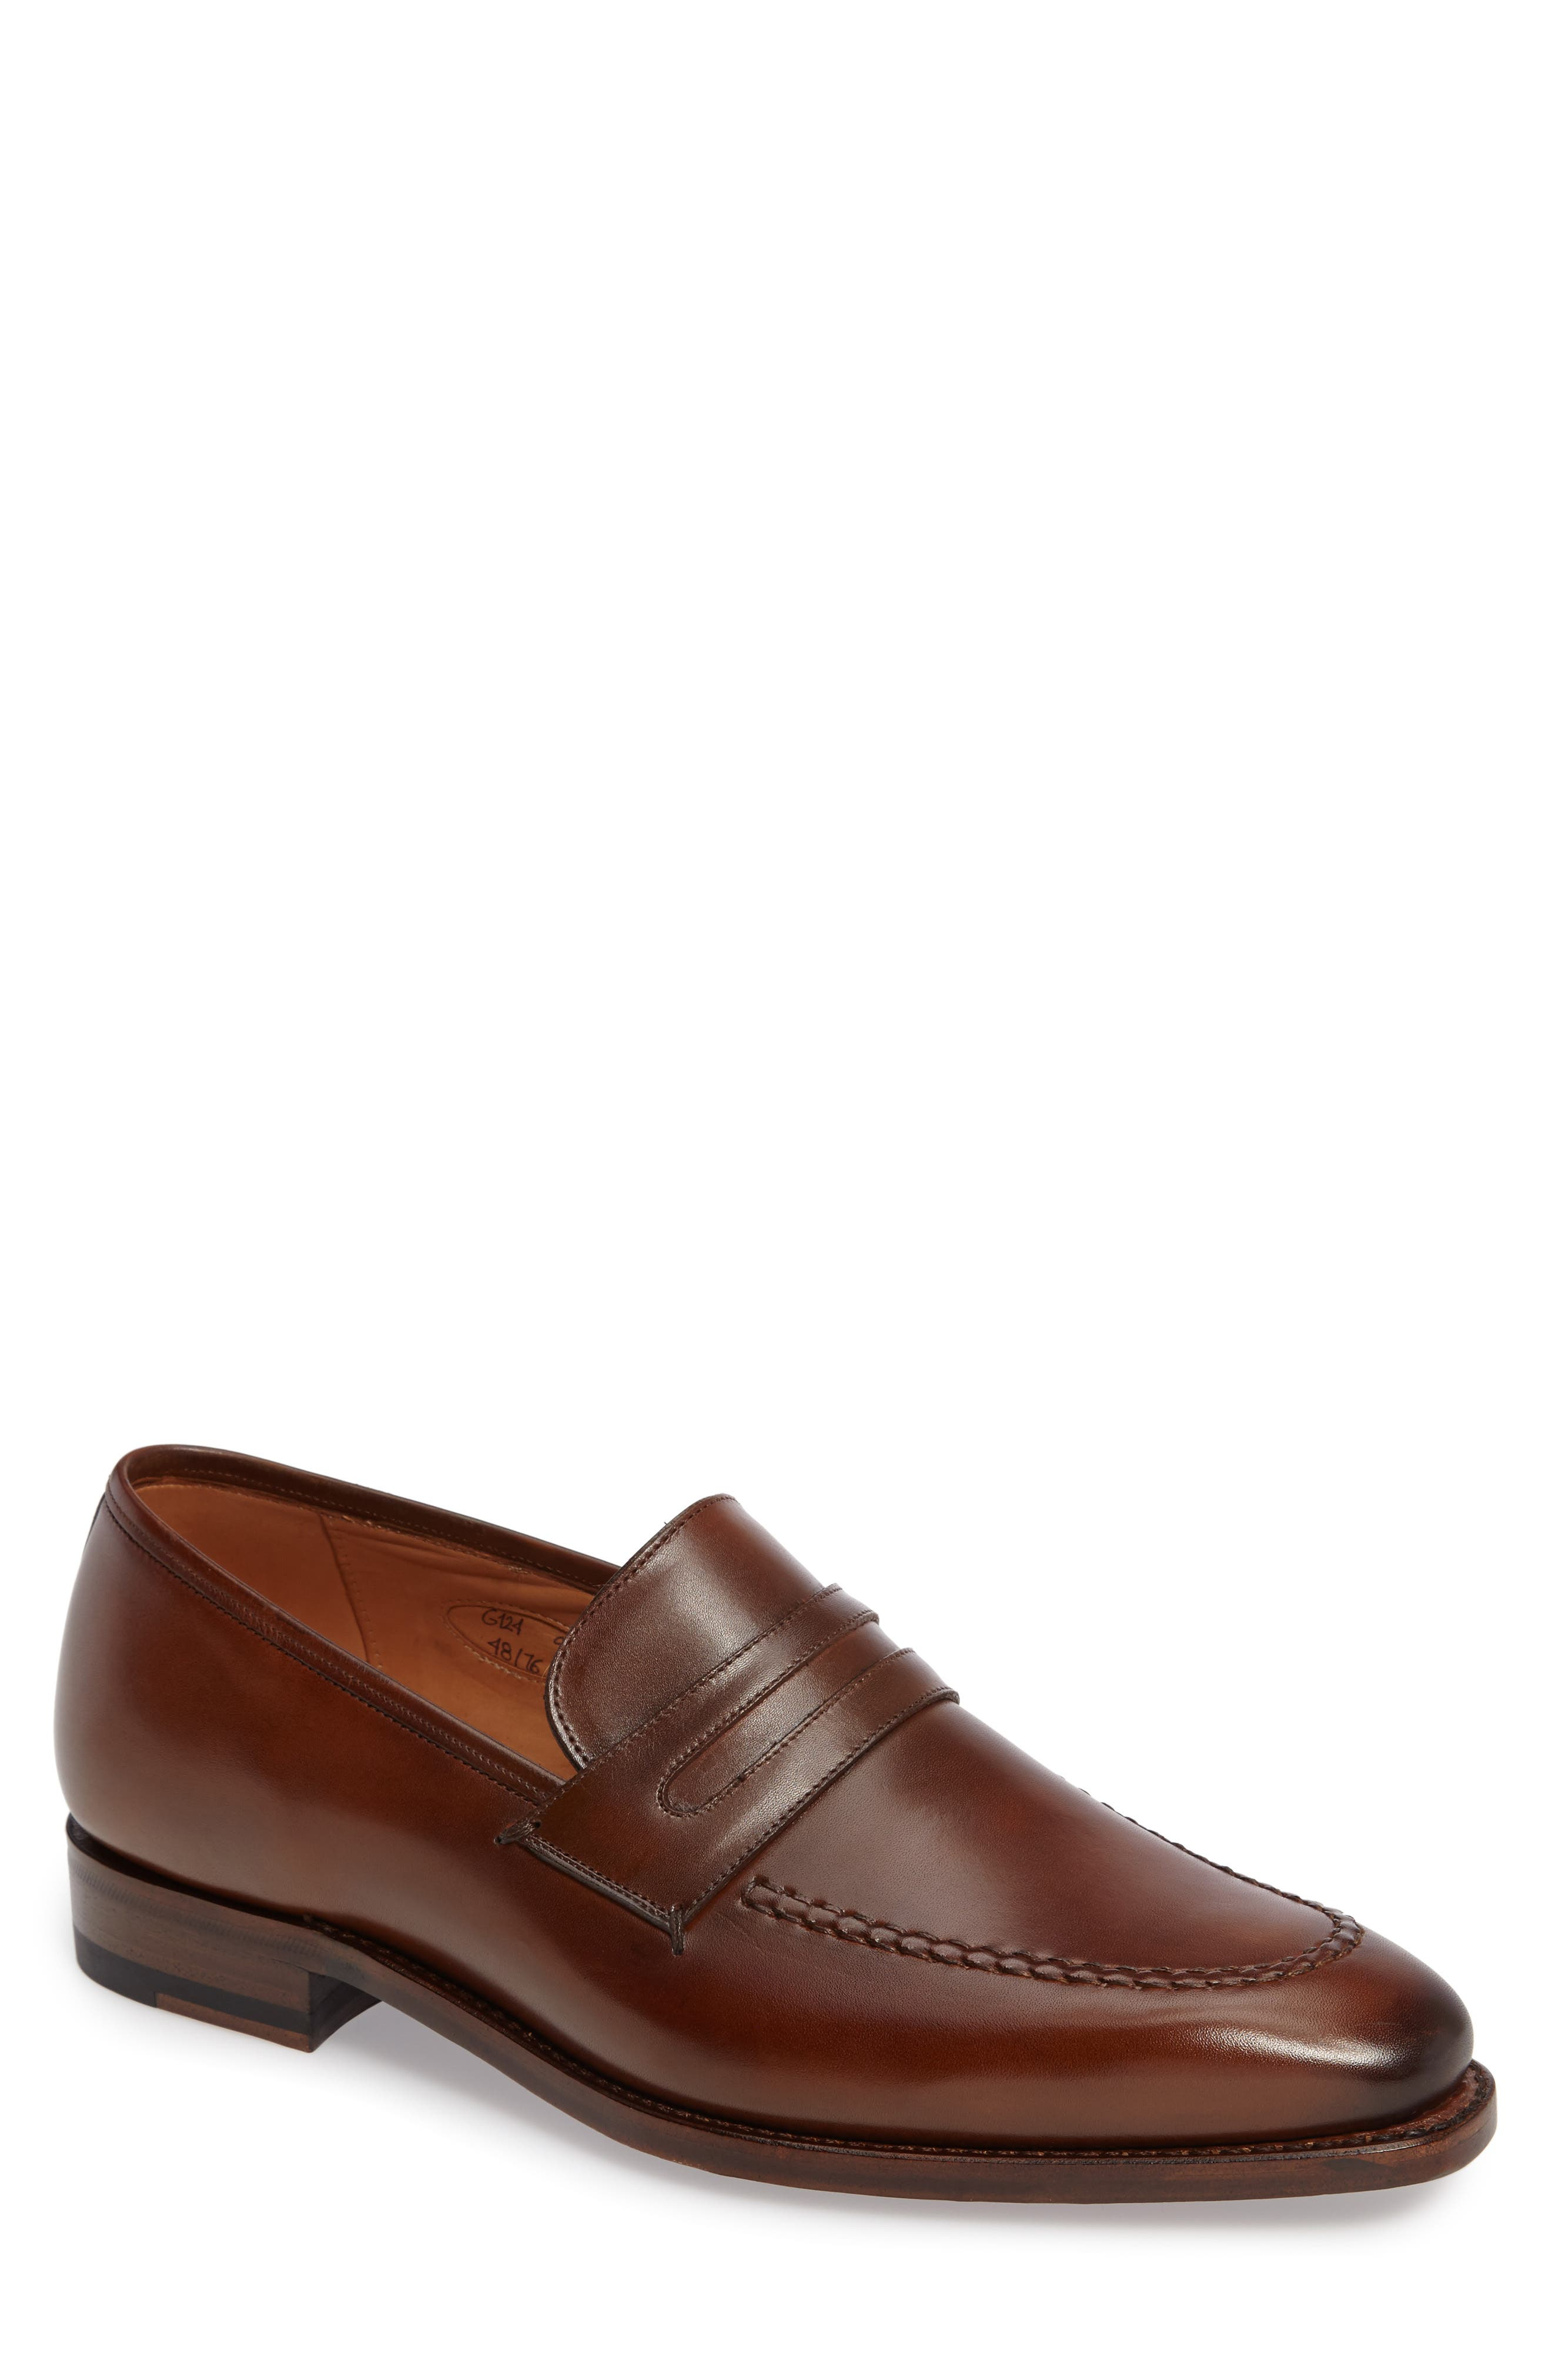 by Mezlan G124 Apron Toe Loafer,                         Main,                         color, COGNAC